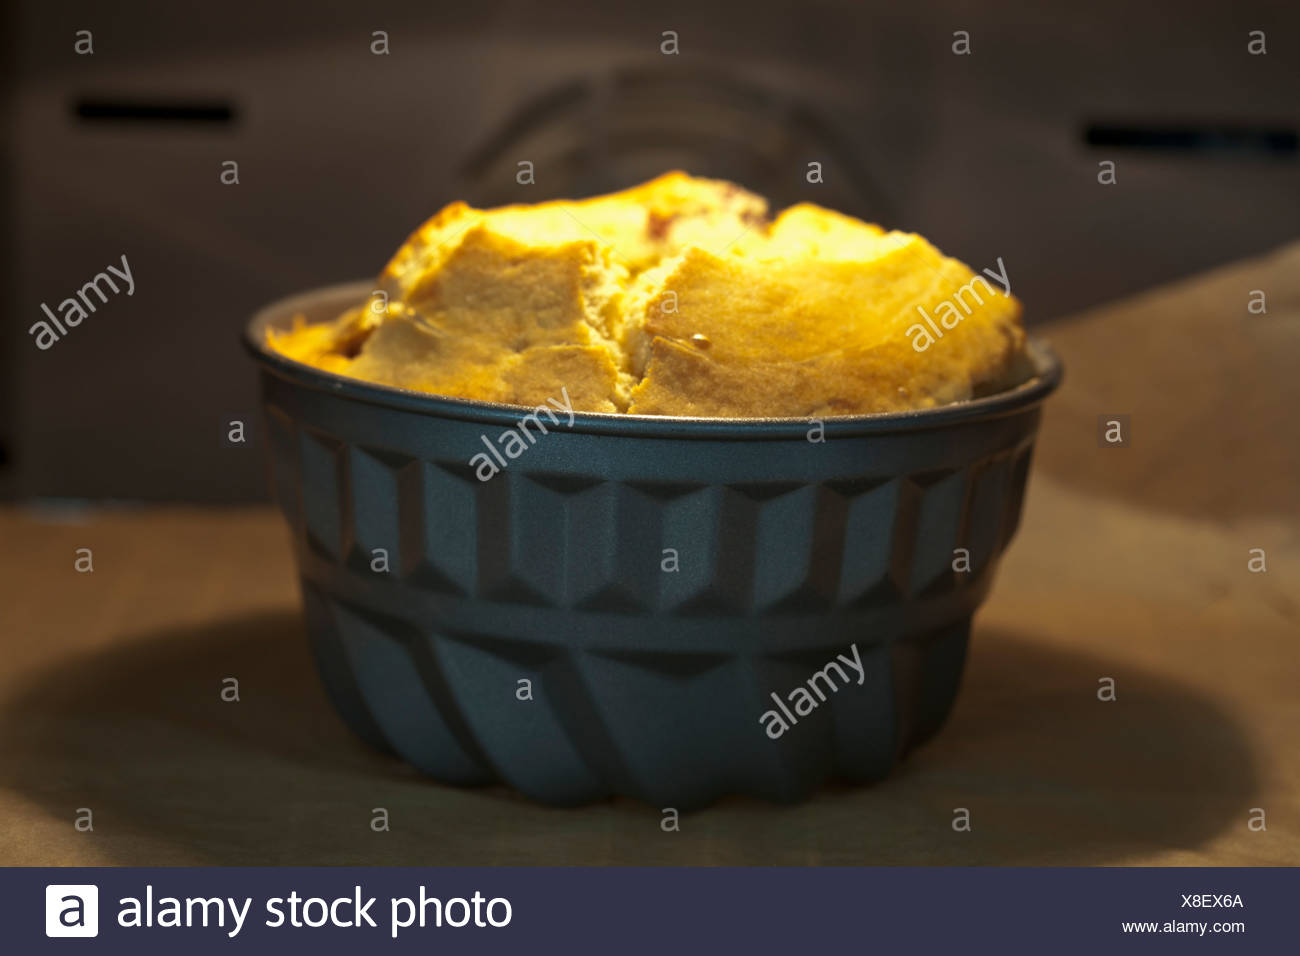 Ring cake at oven - Stock Image